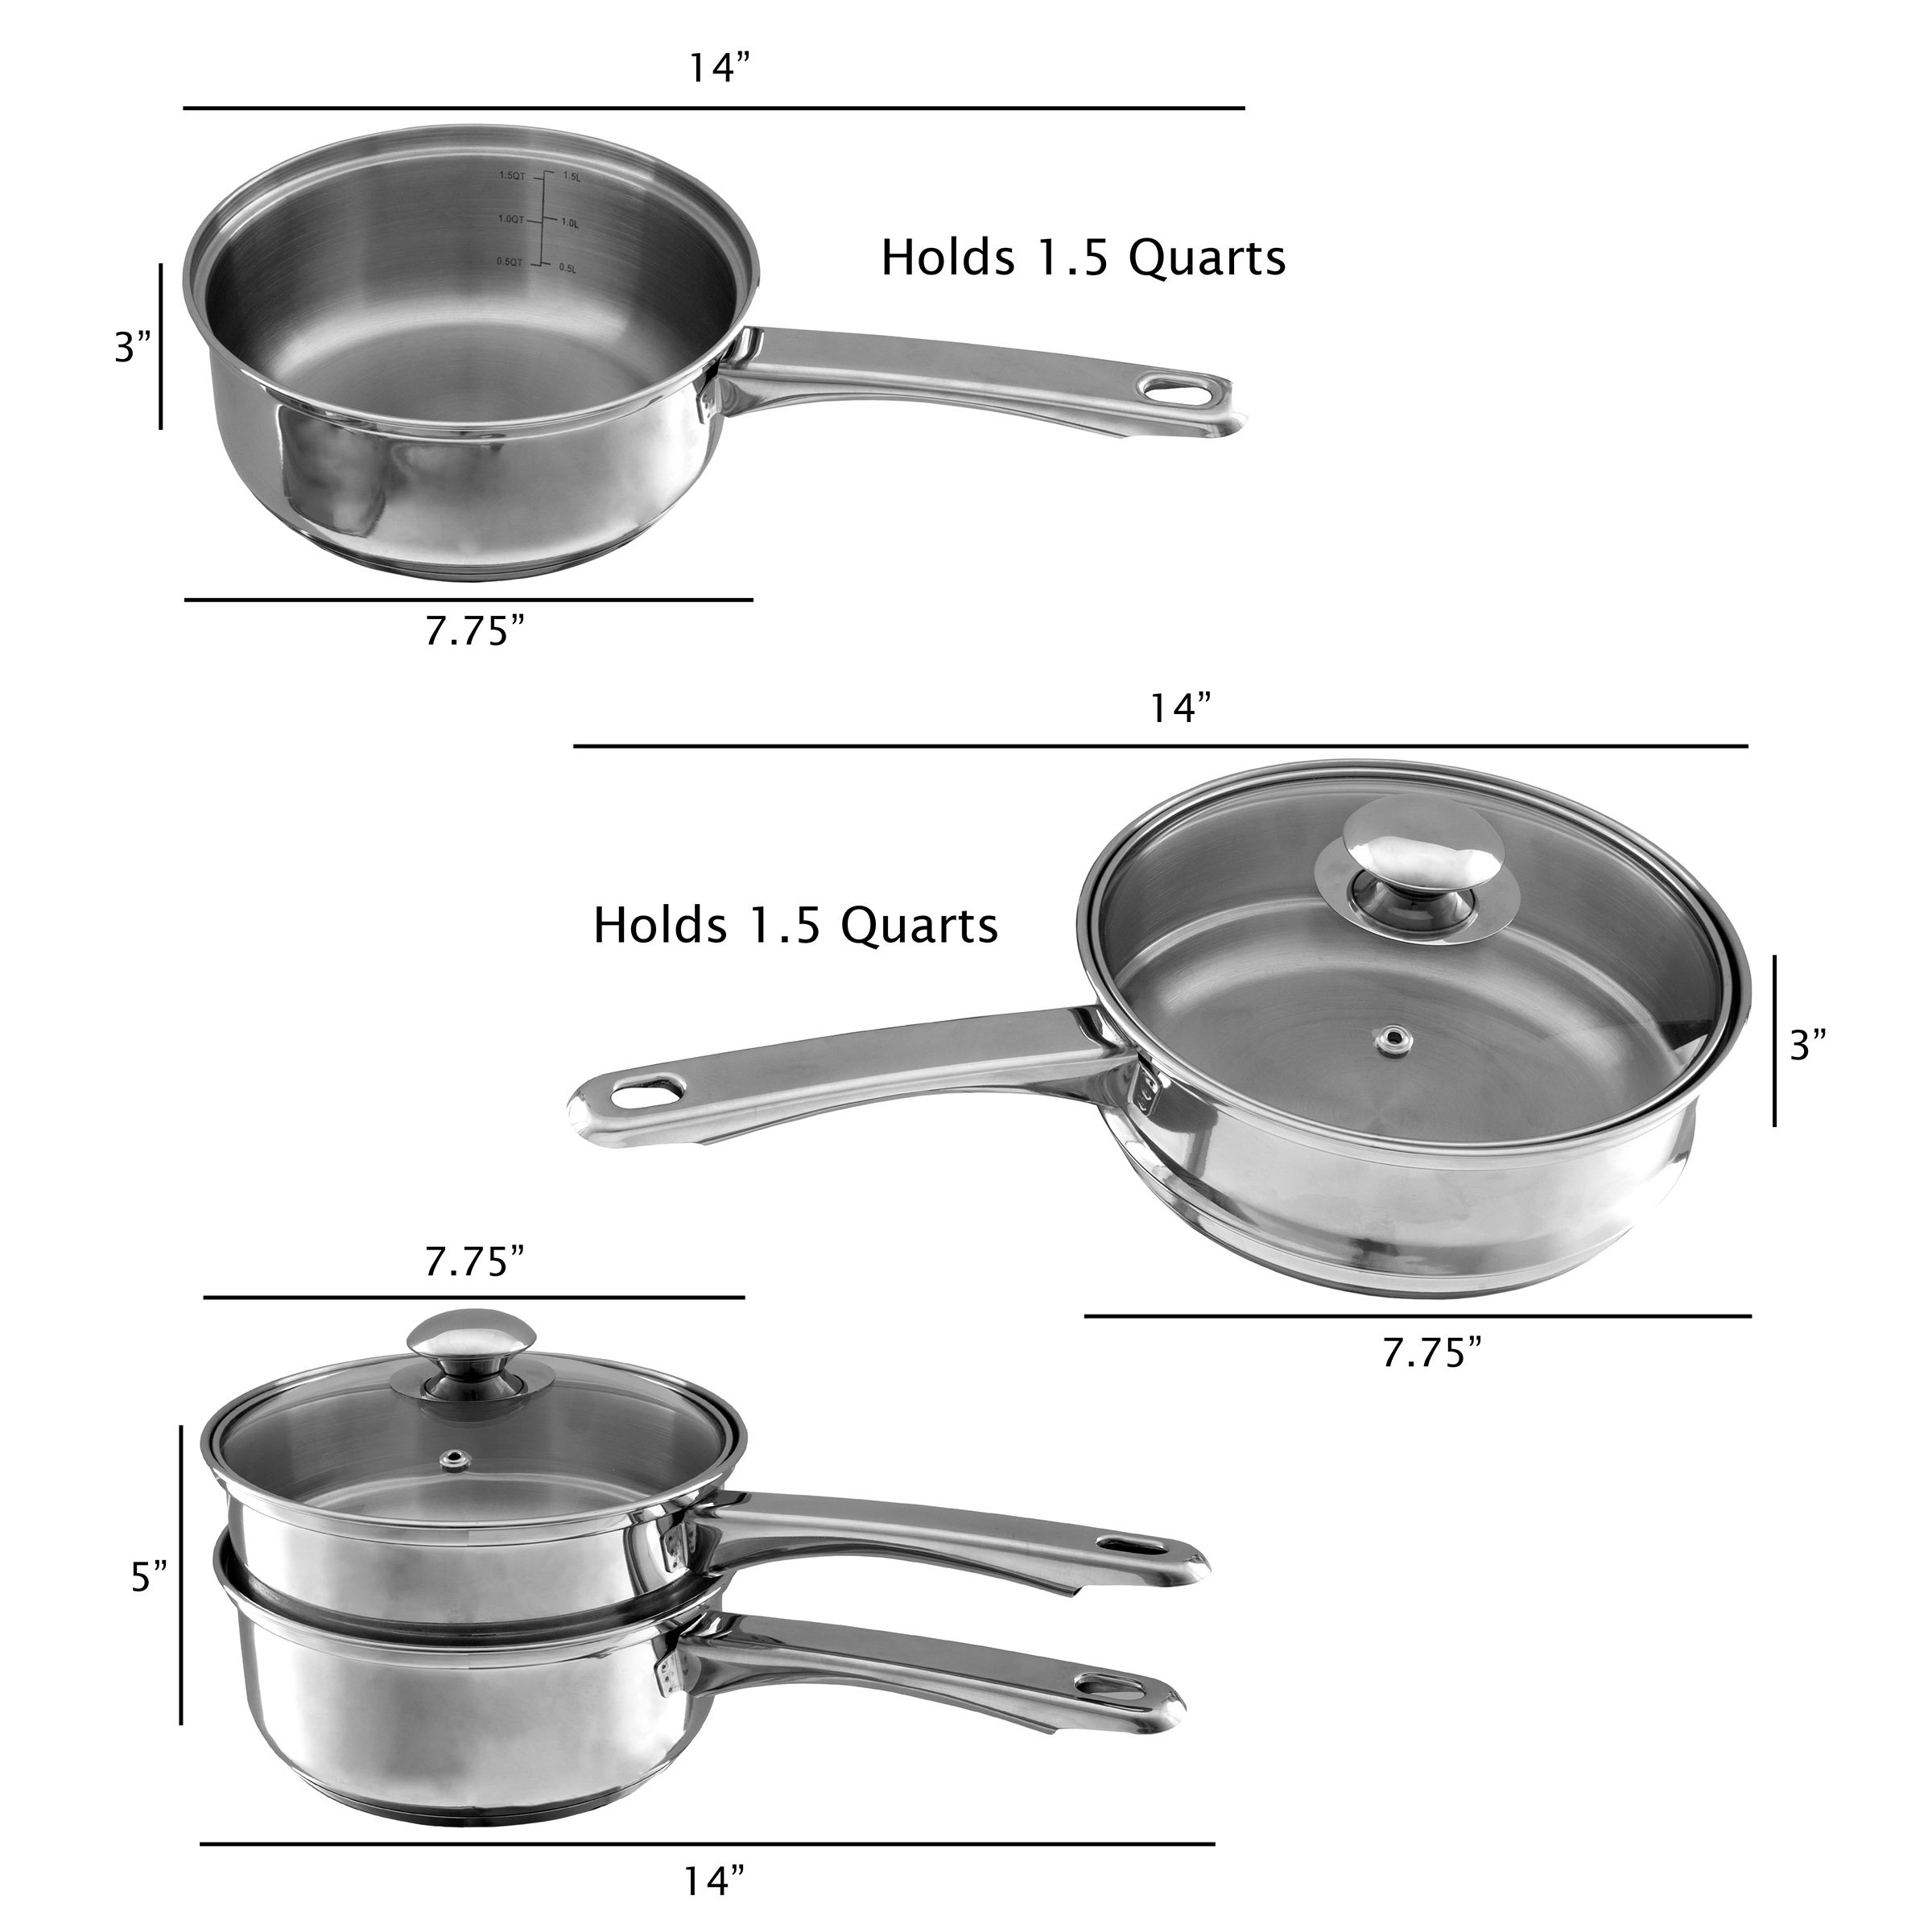 Stainless Steel 6 Cup Double Boiler – 1.5 Quart Saucepan 2-in-1 Combo with Vented Glass Lid- Kitchen Cookware with Measurements by Classic Cuisine by Classic Cuisine (Image #2)